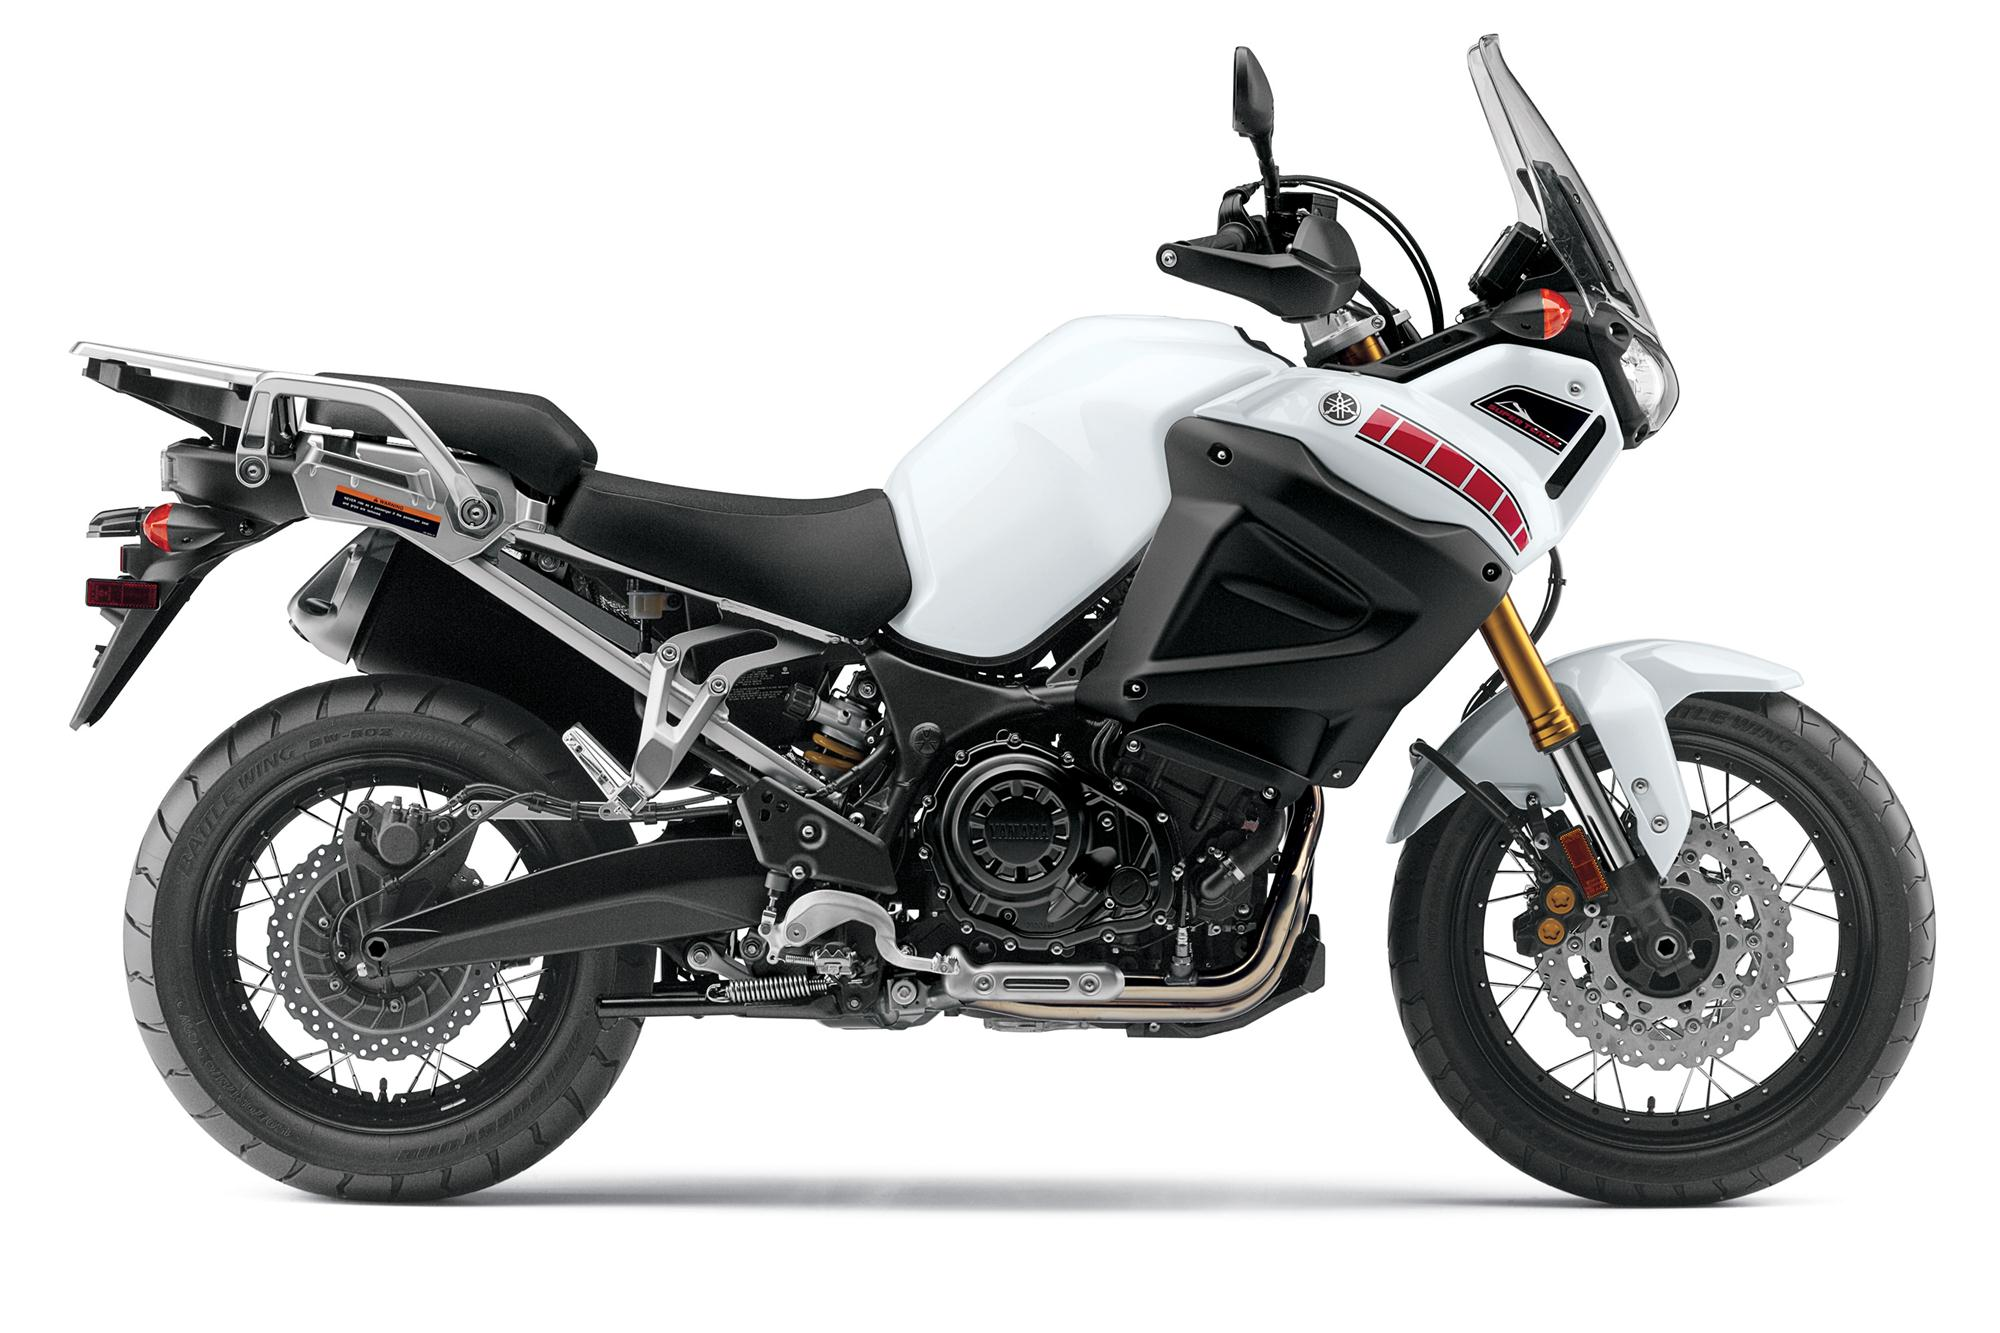 yamaha xt1200z super tenere specs 2012 2013 autoevolution. Black Bedroom Furniture Sets. Home Design Ideas